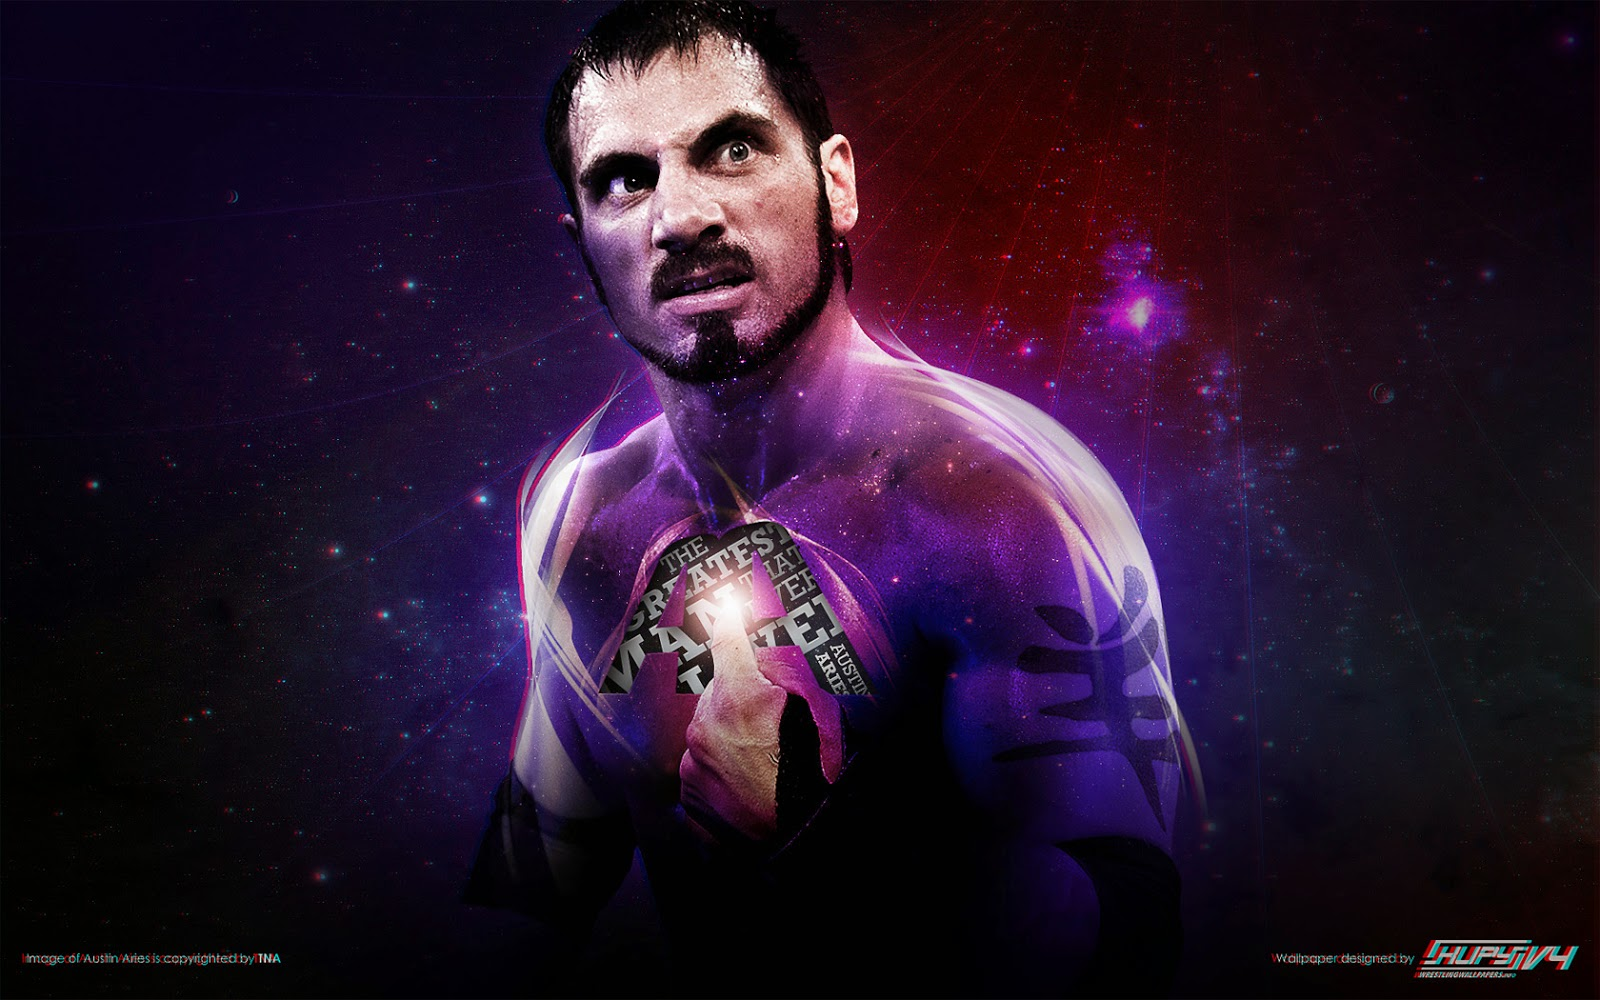 WWE Austin Aries HD Wallpapers WWE Wrestling Wallpapers 1600x1000